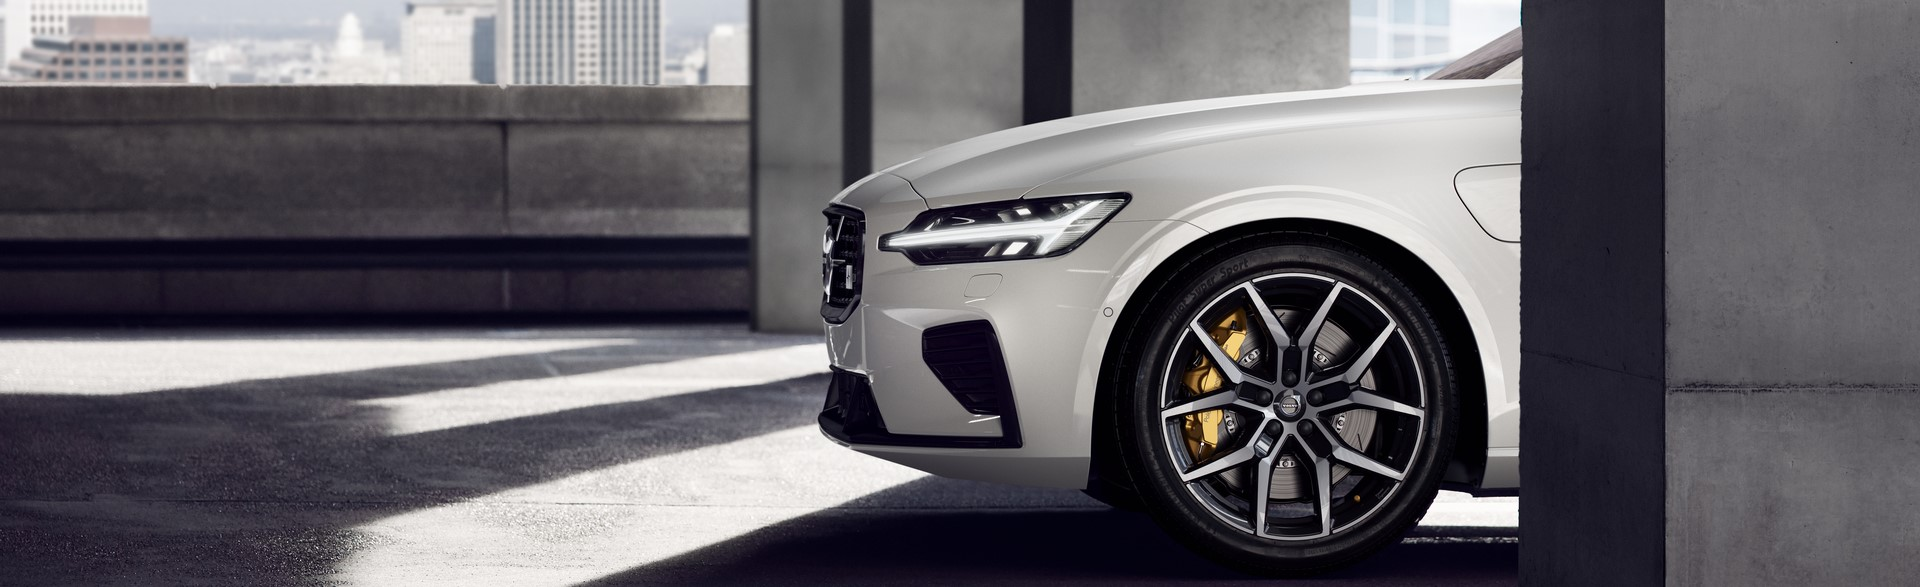 Polestar Engineered Software